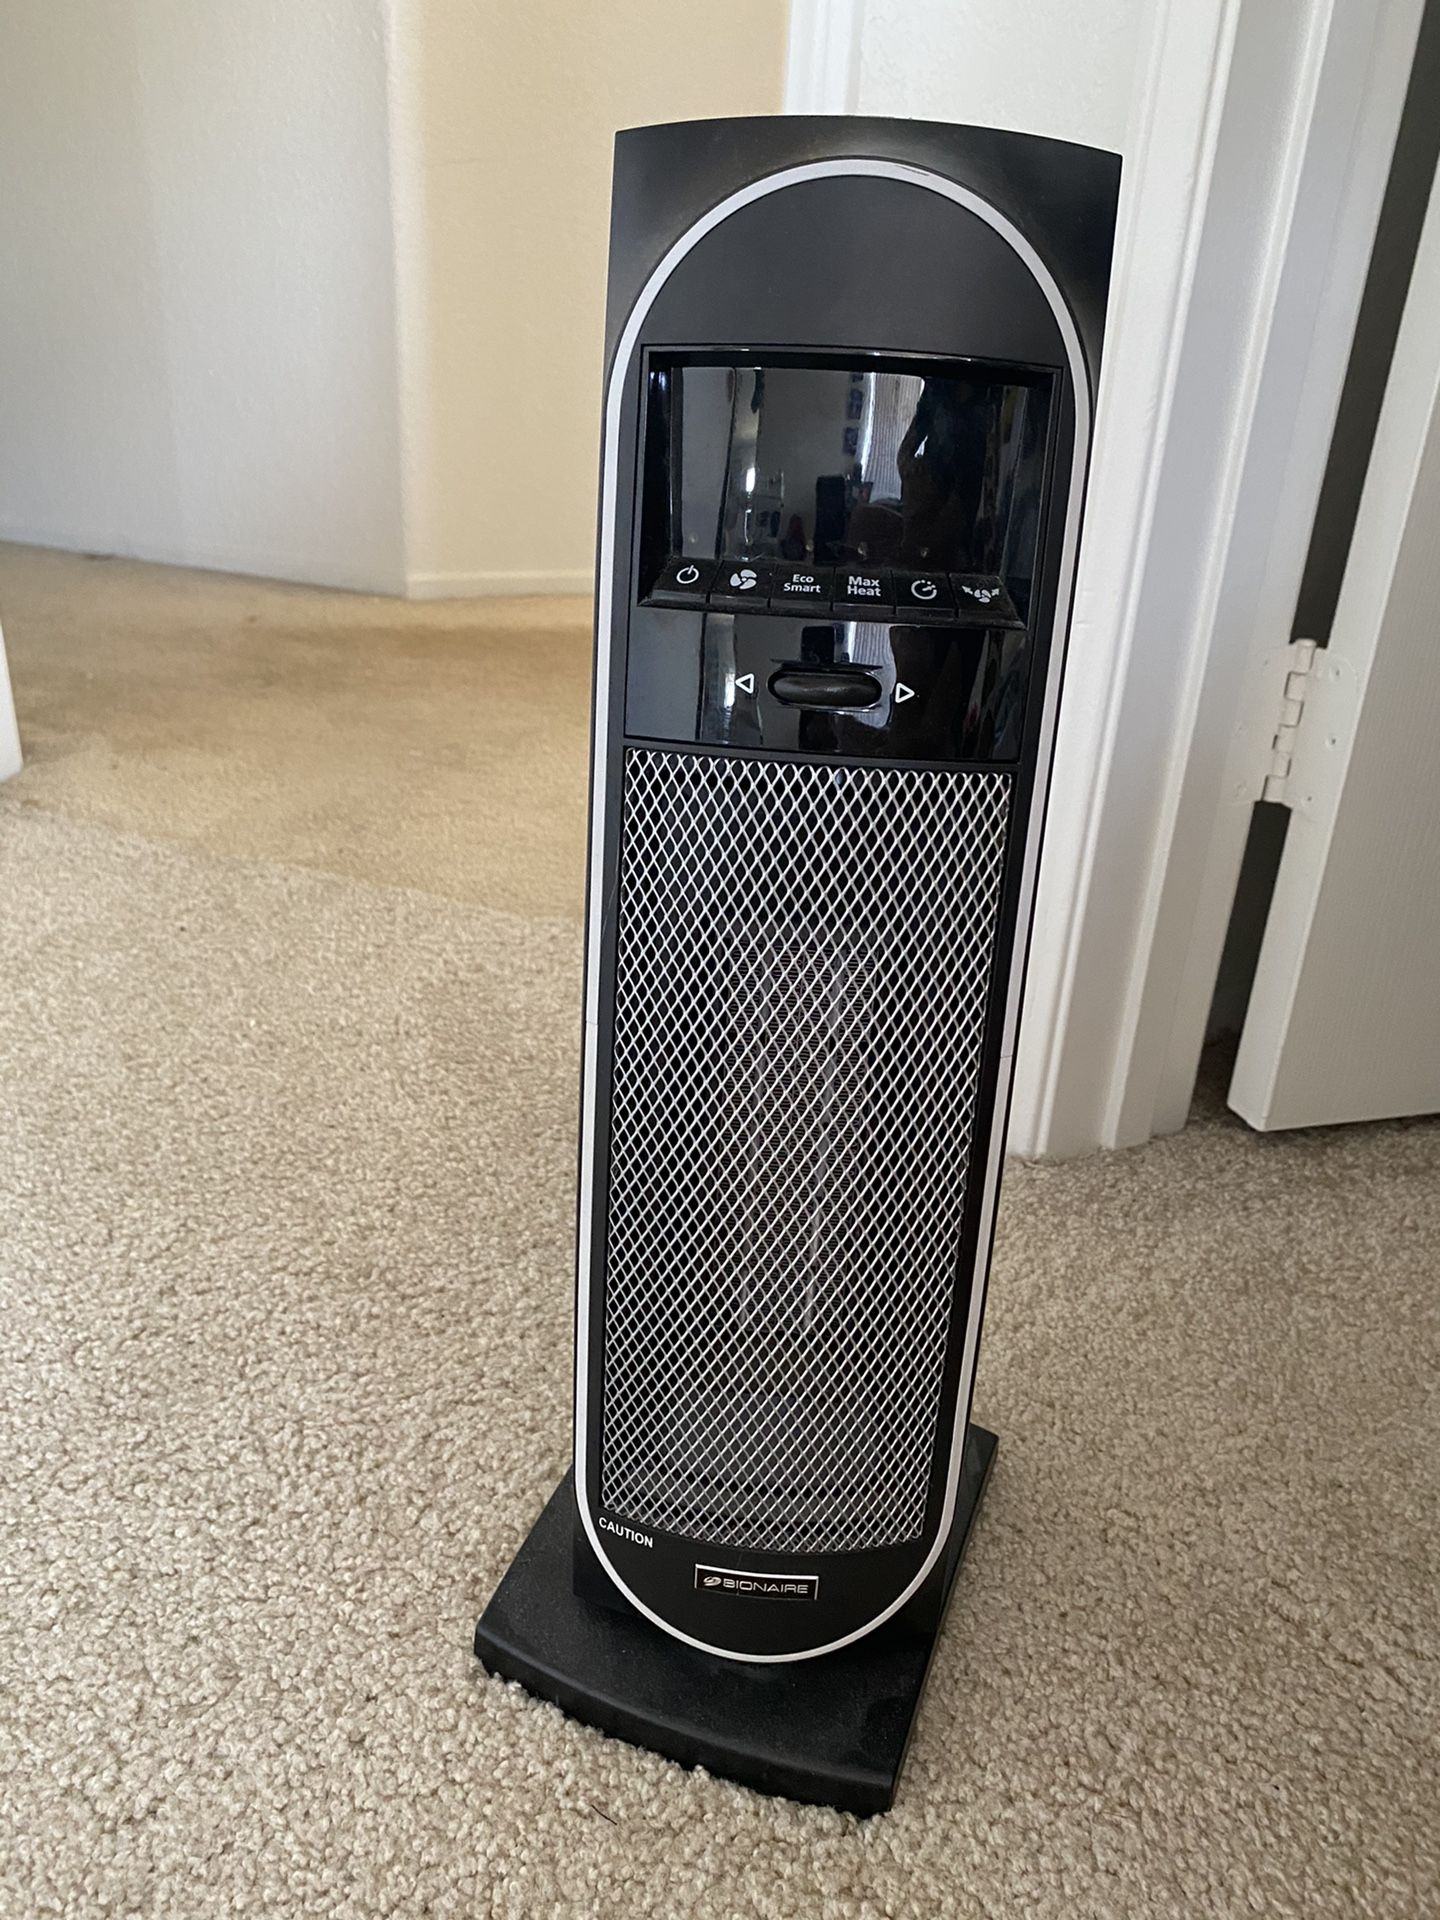 Bionare Tower Fan & Heater with Thermostat